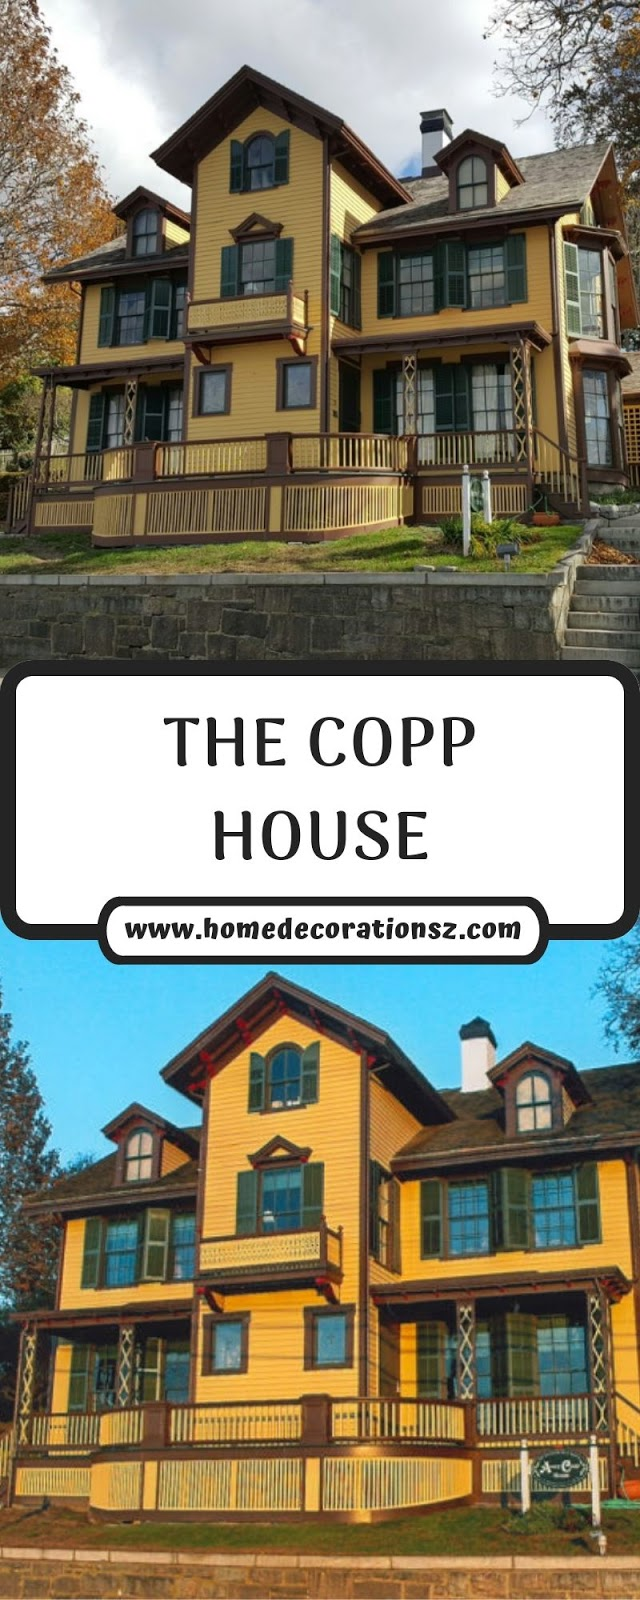 THE COPP HOUSE